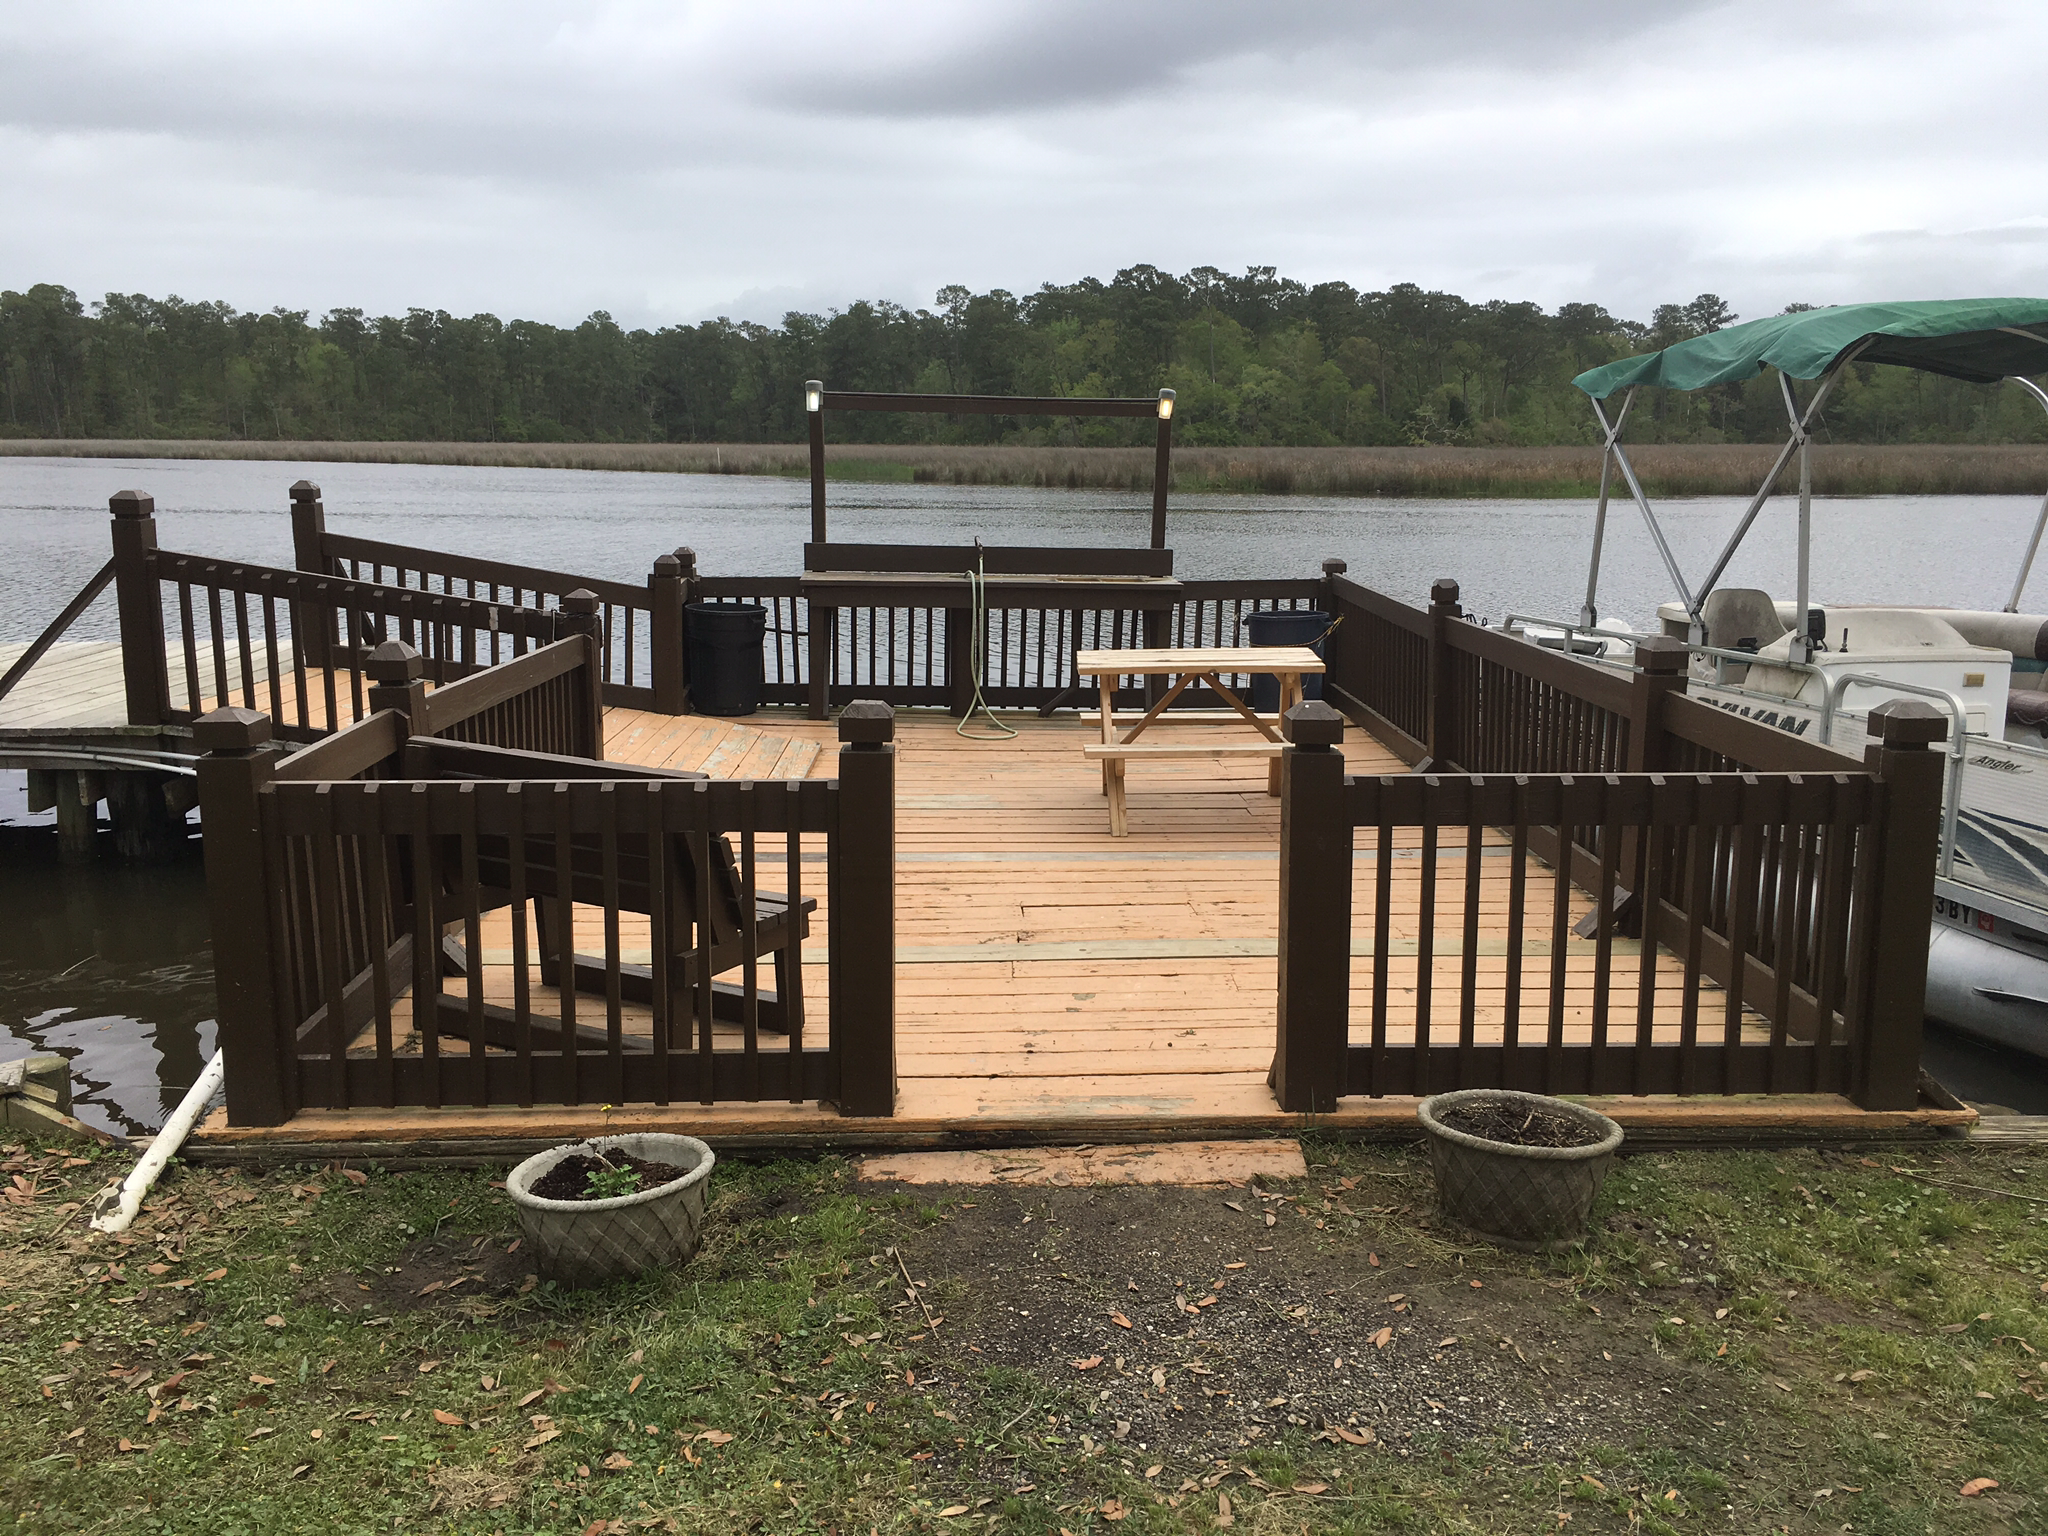 Wooden deck on river with boat alongside